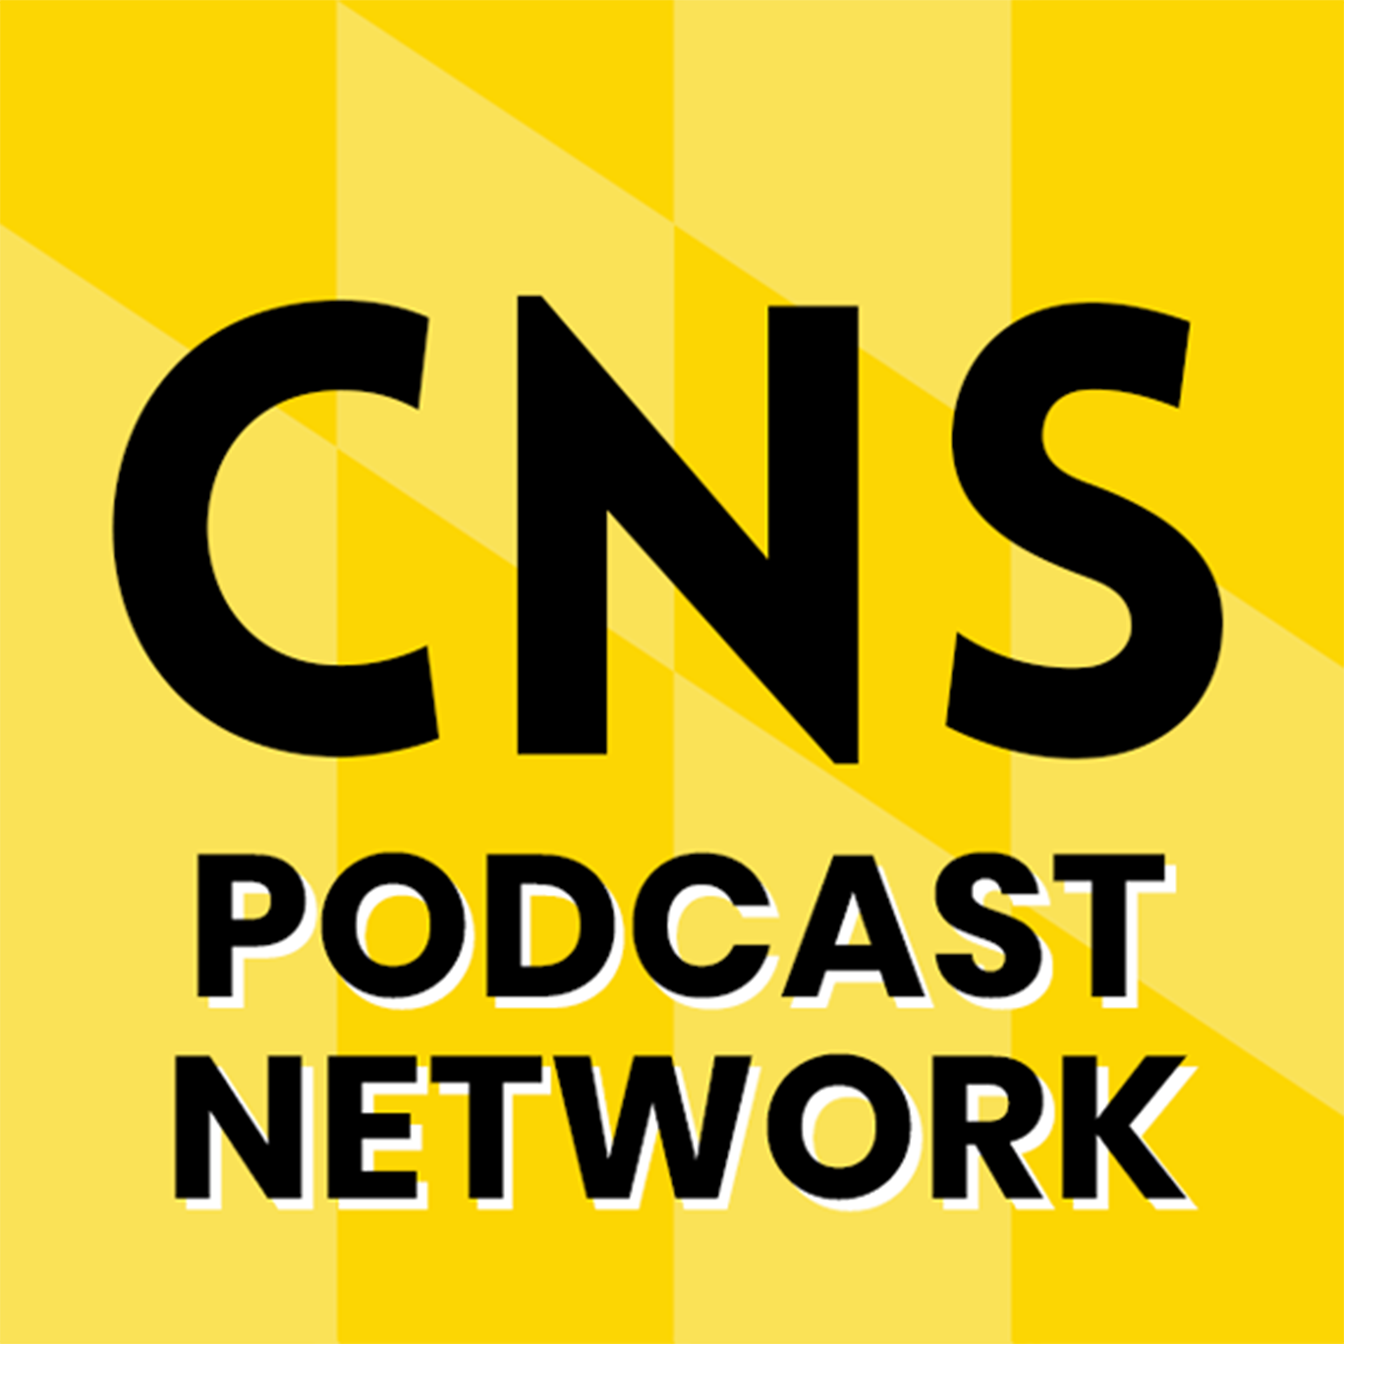 The CNS Podcast Network